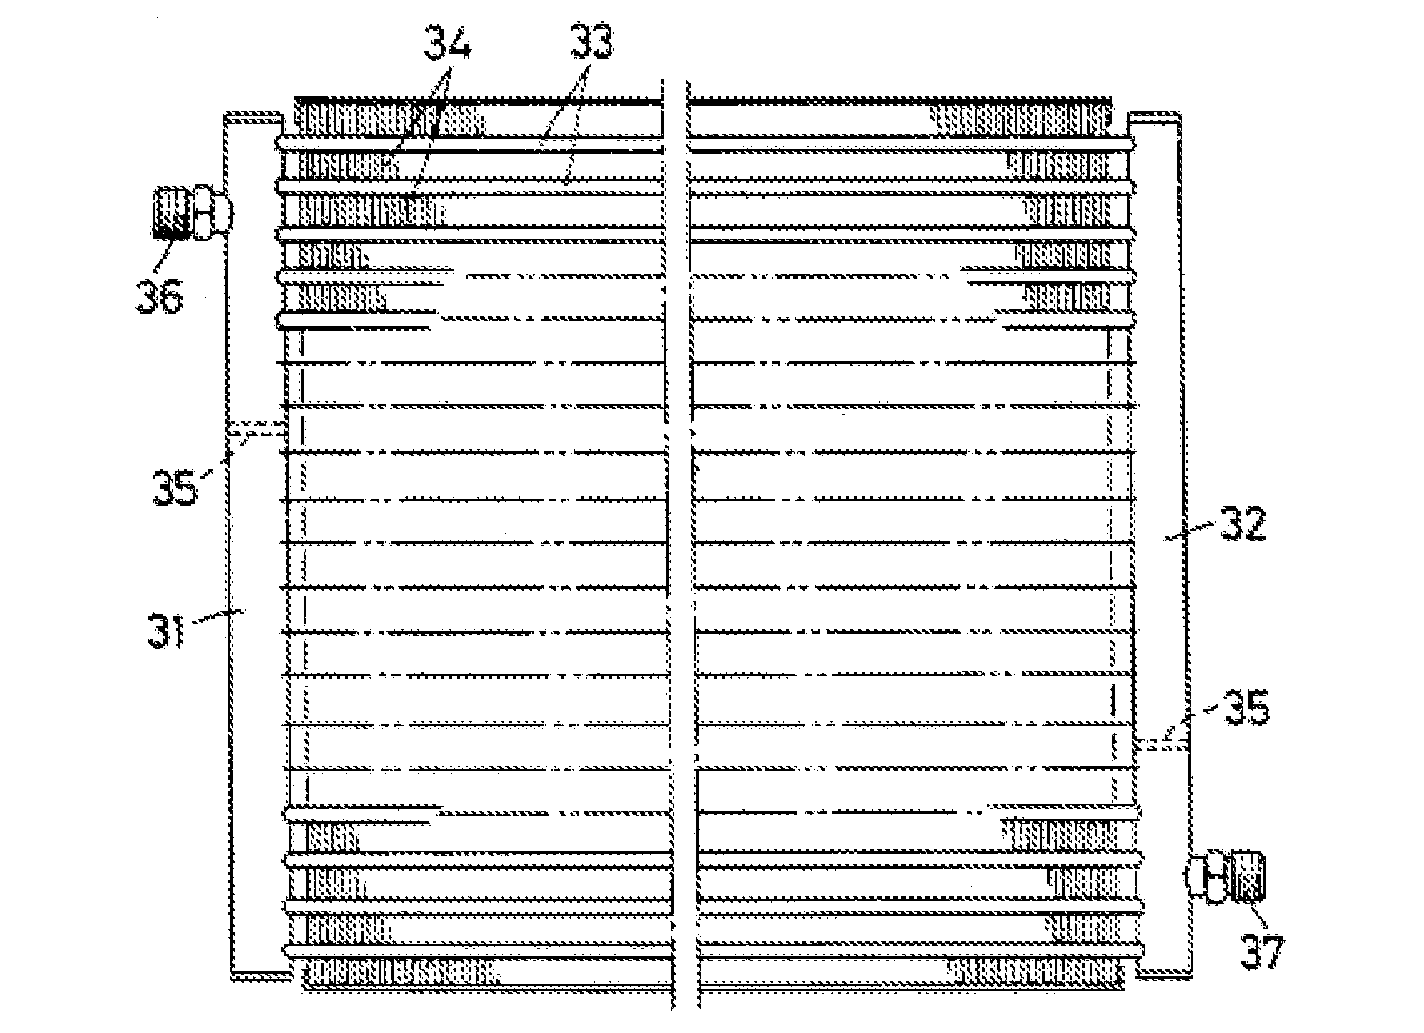 Ouchi Figure 13, a front elevation of a heat exchanger